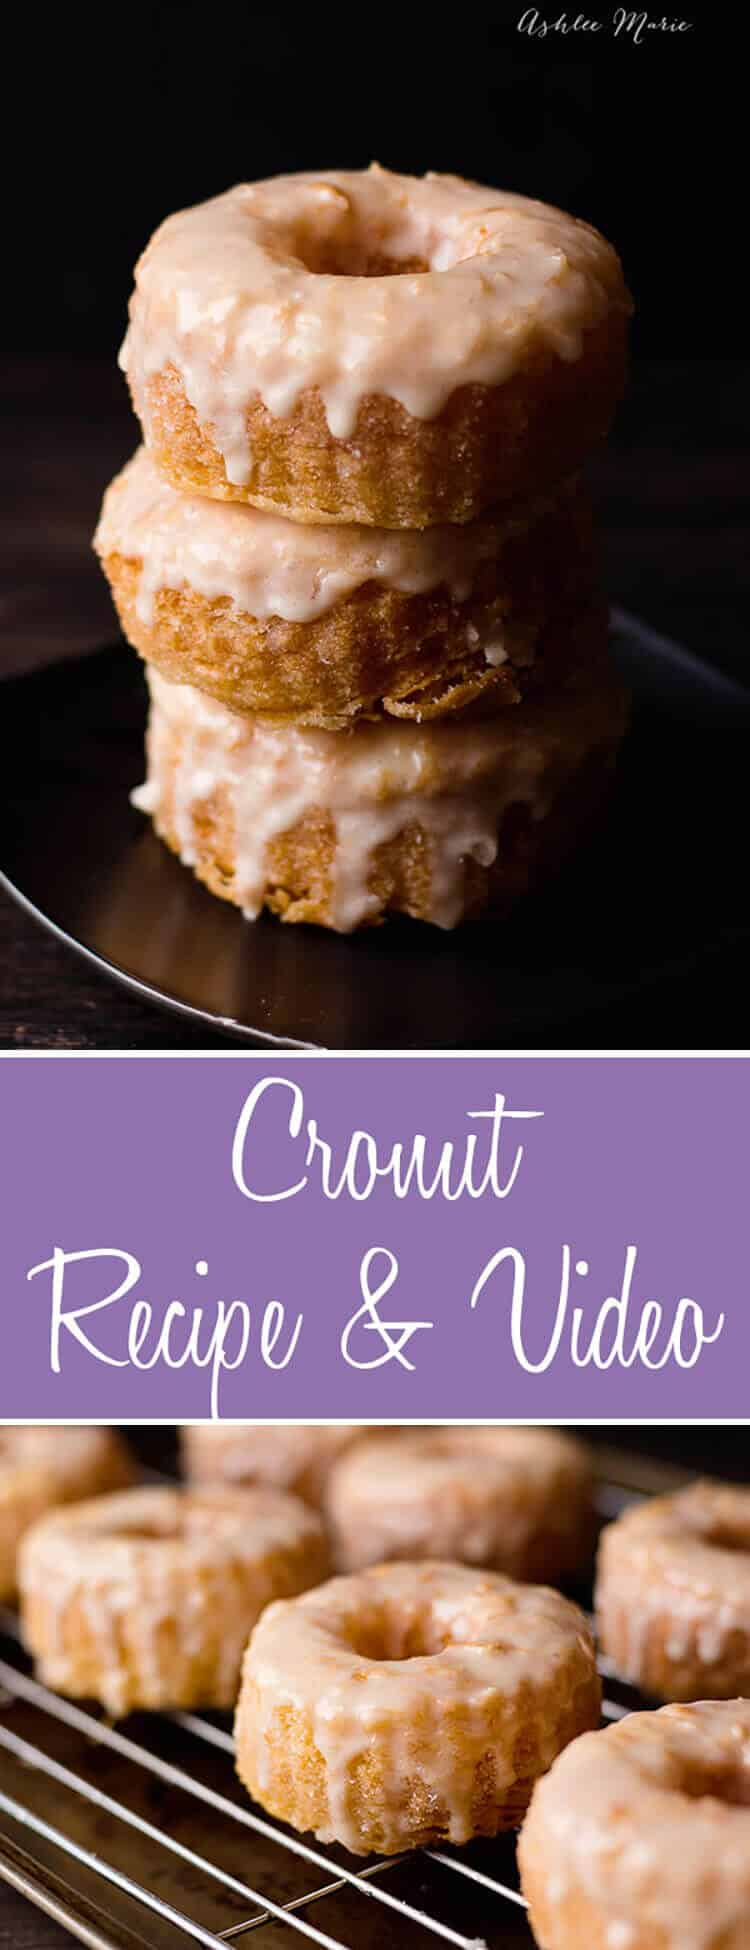 Cronuts have been huge all year, instead of waiting in line make your own at home with this recipe and video tutorial